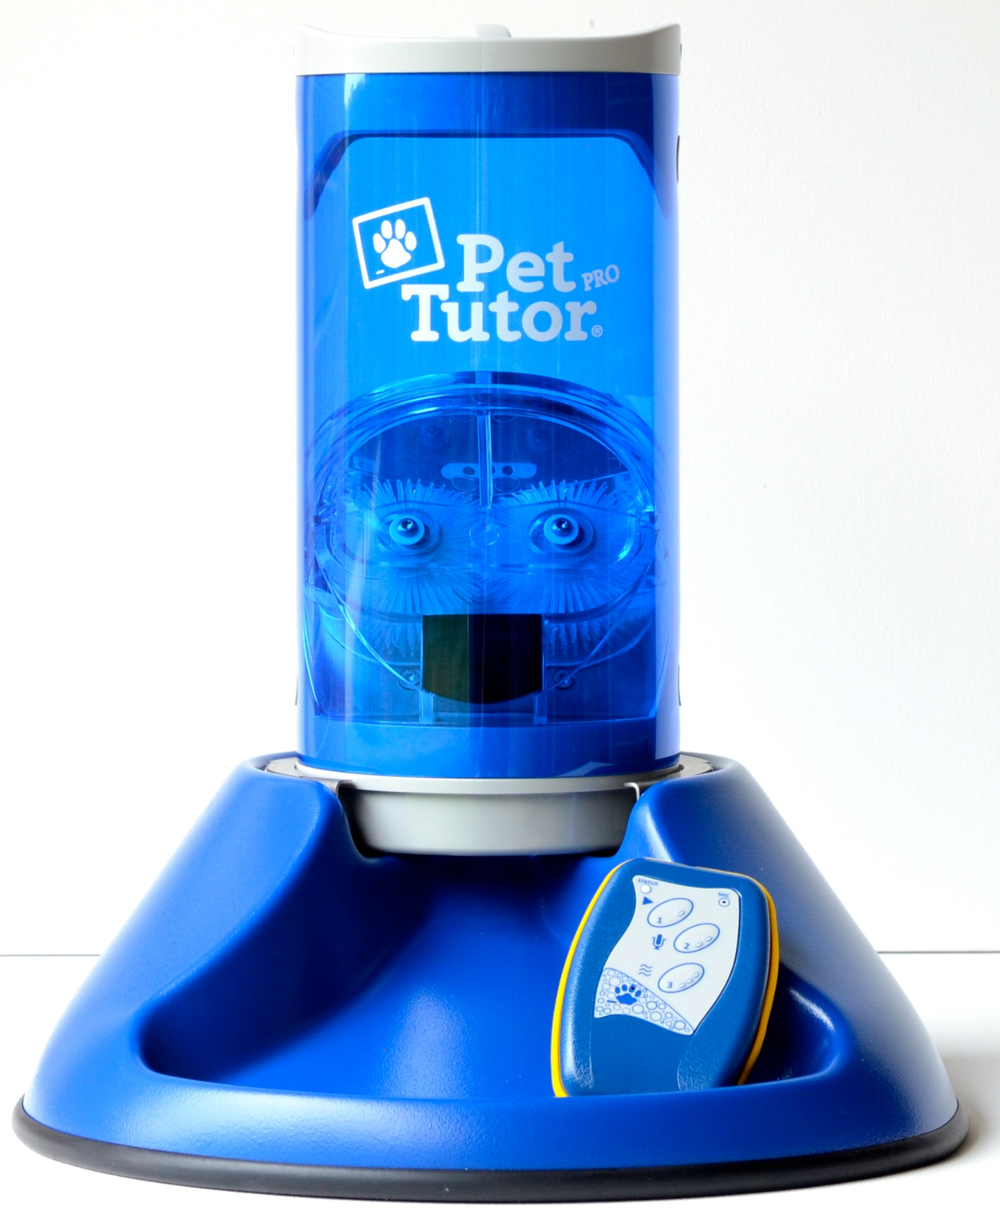 The Pet Tutor